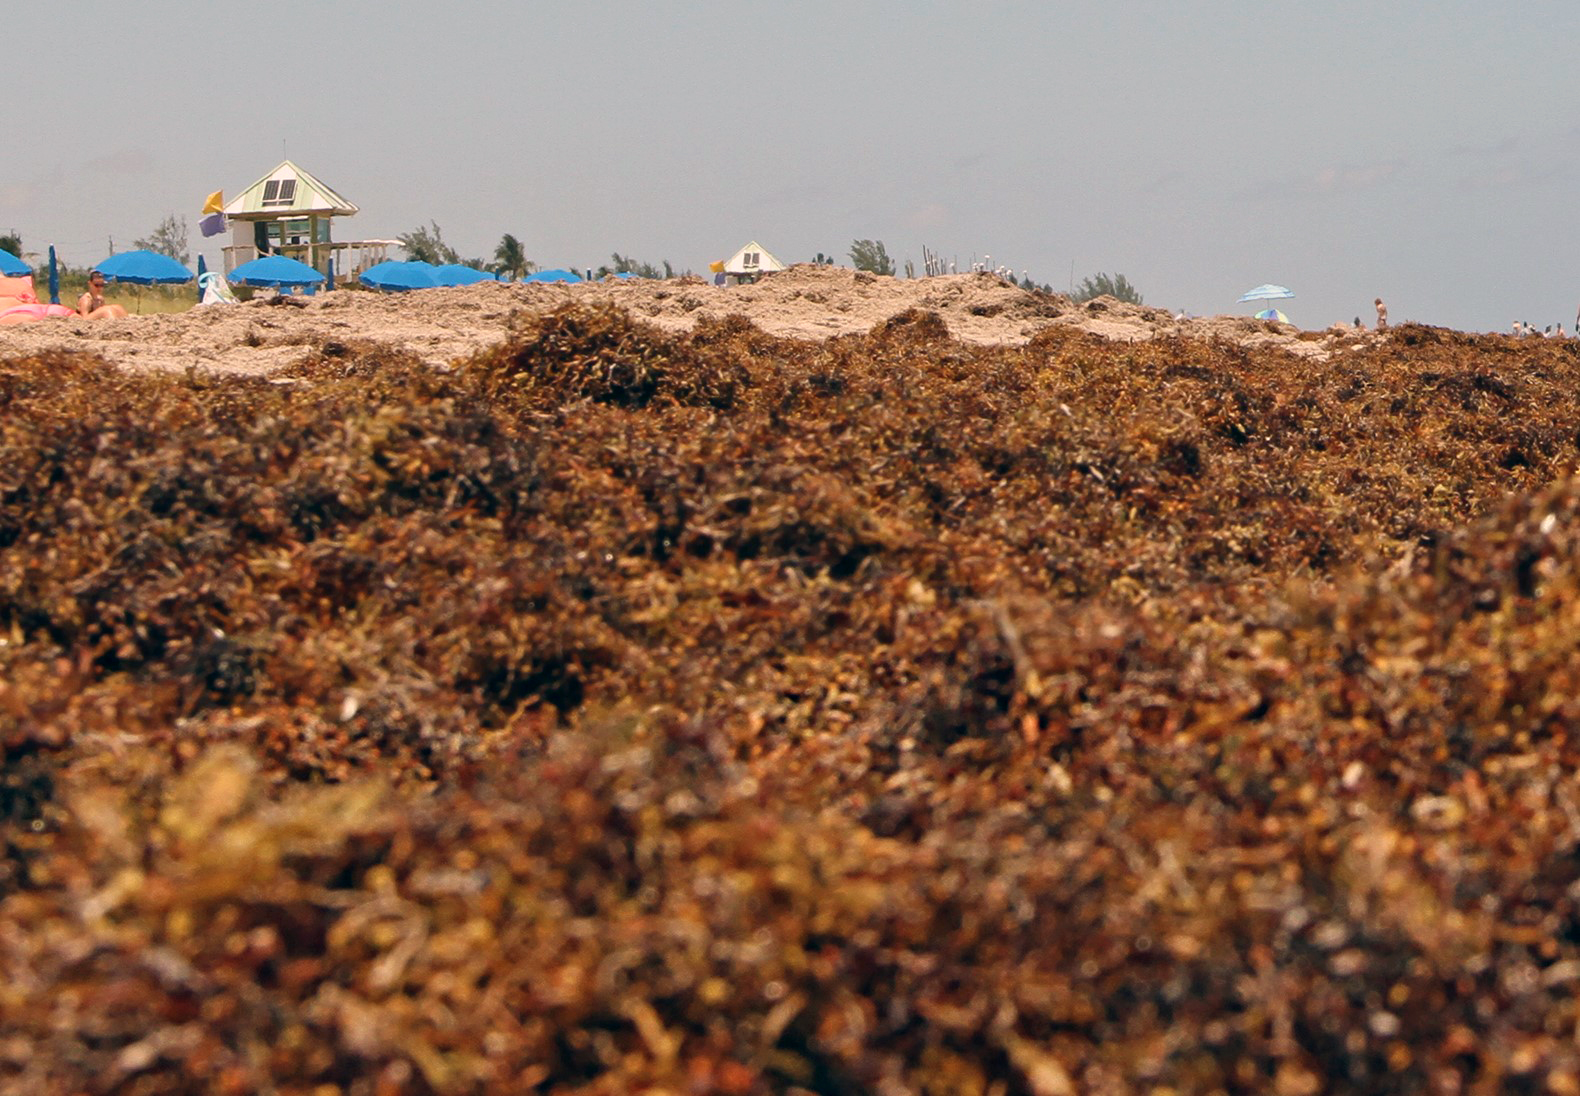 Sargassum on Delray Beach in South Florida in May 2019. Credit: Brian Cousin, Florida Atlantic University's Harbor Branch Oceanographic Institute